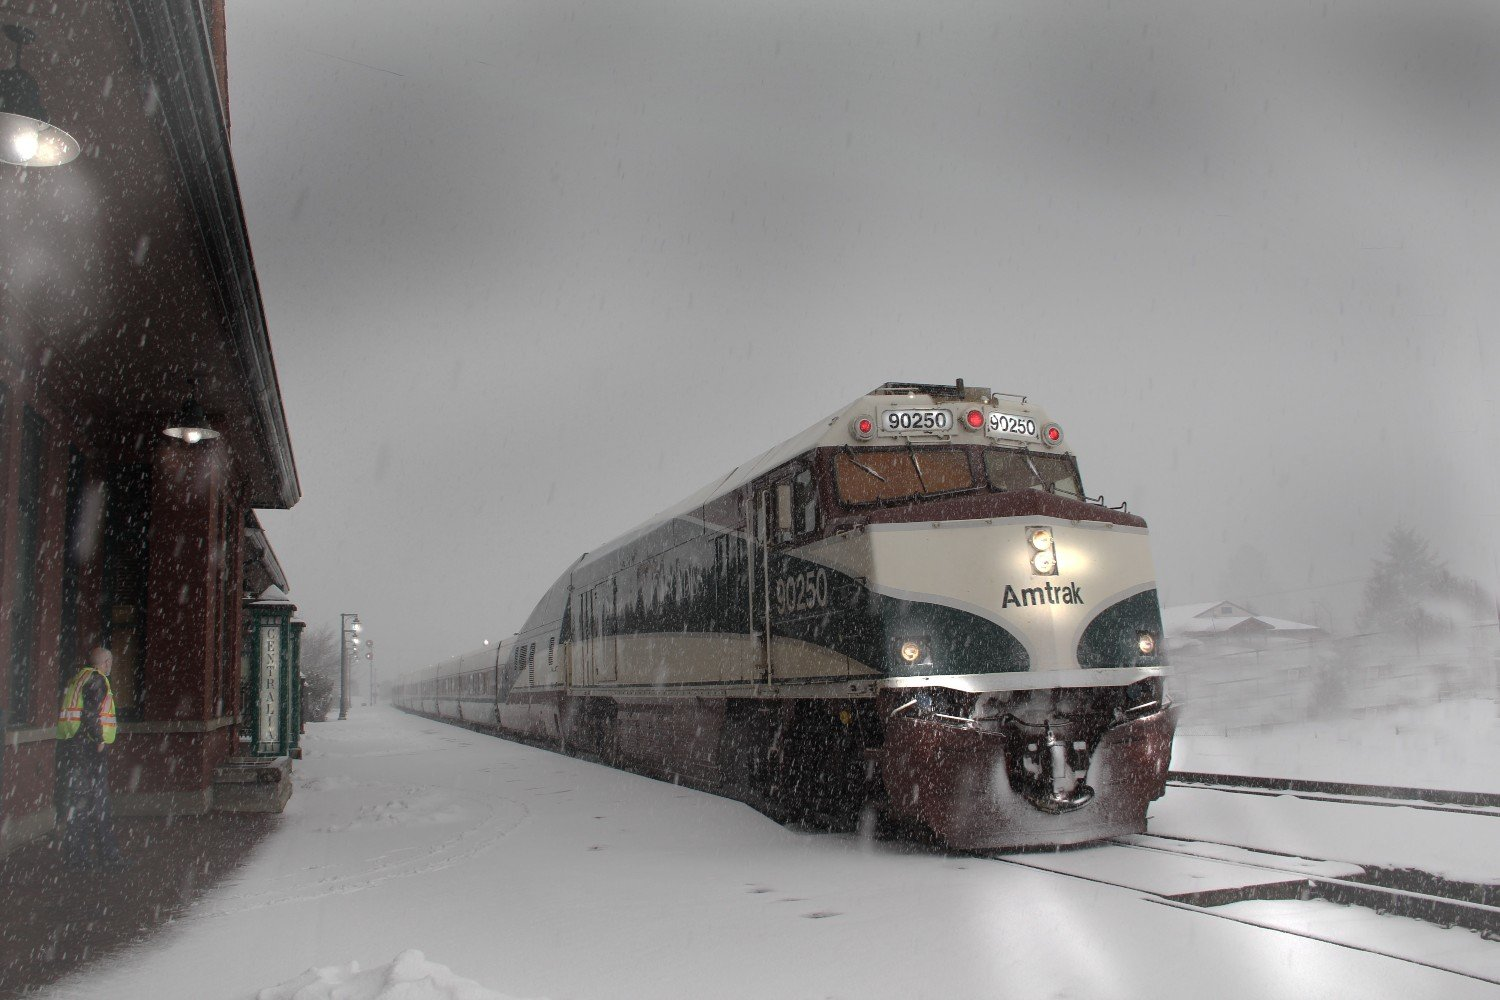 How to Cancel or Change an Amtrak Ticket